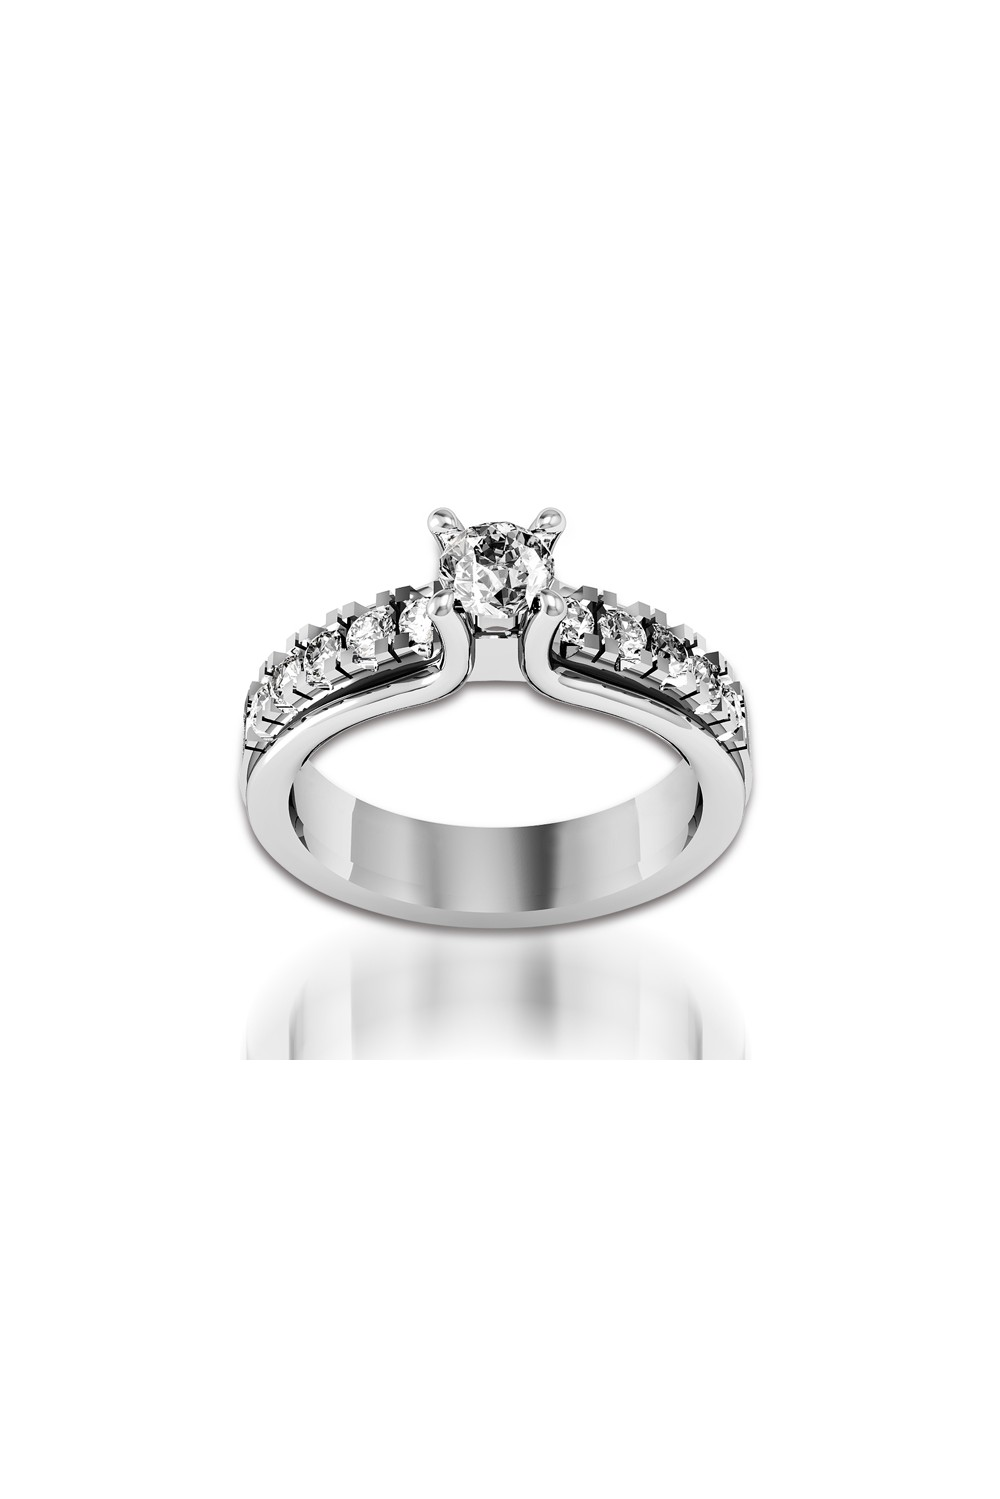 18k solitaire white gold engagement ring. Black Bedroom Furniture Sets. Home Design Ideas